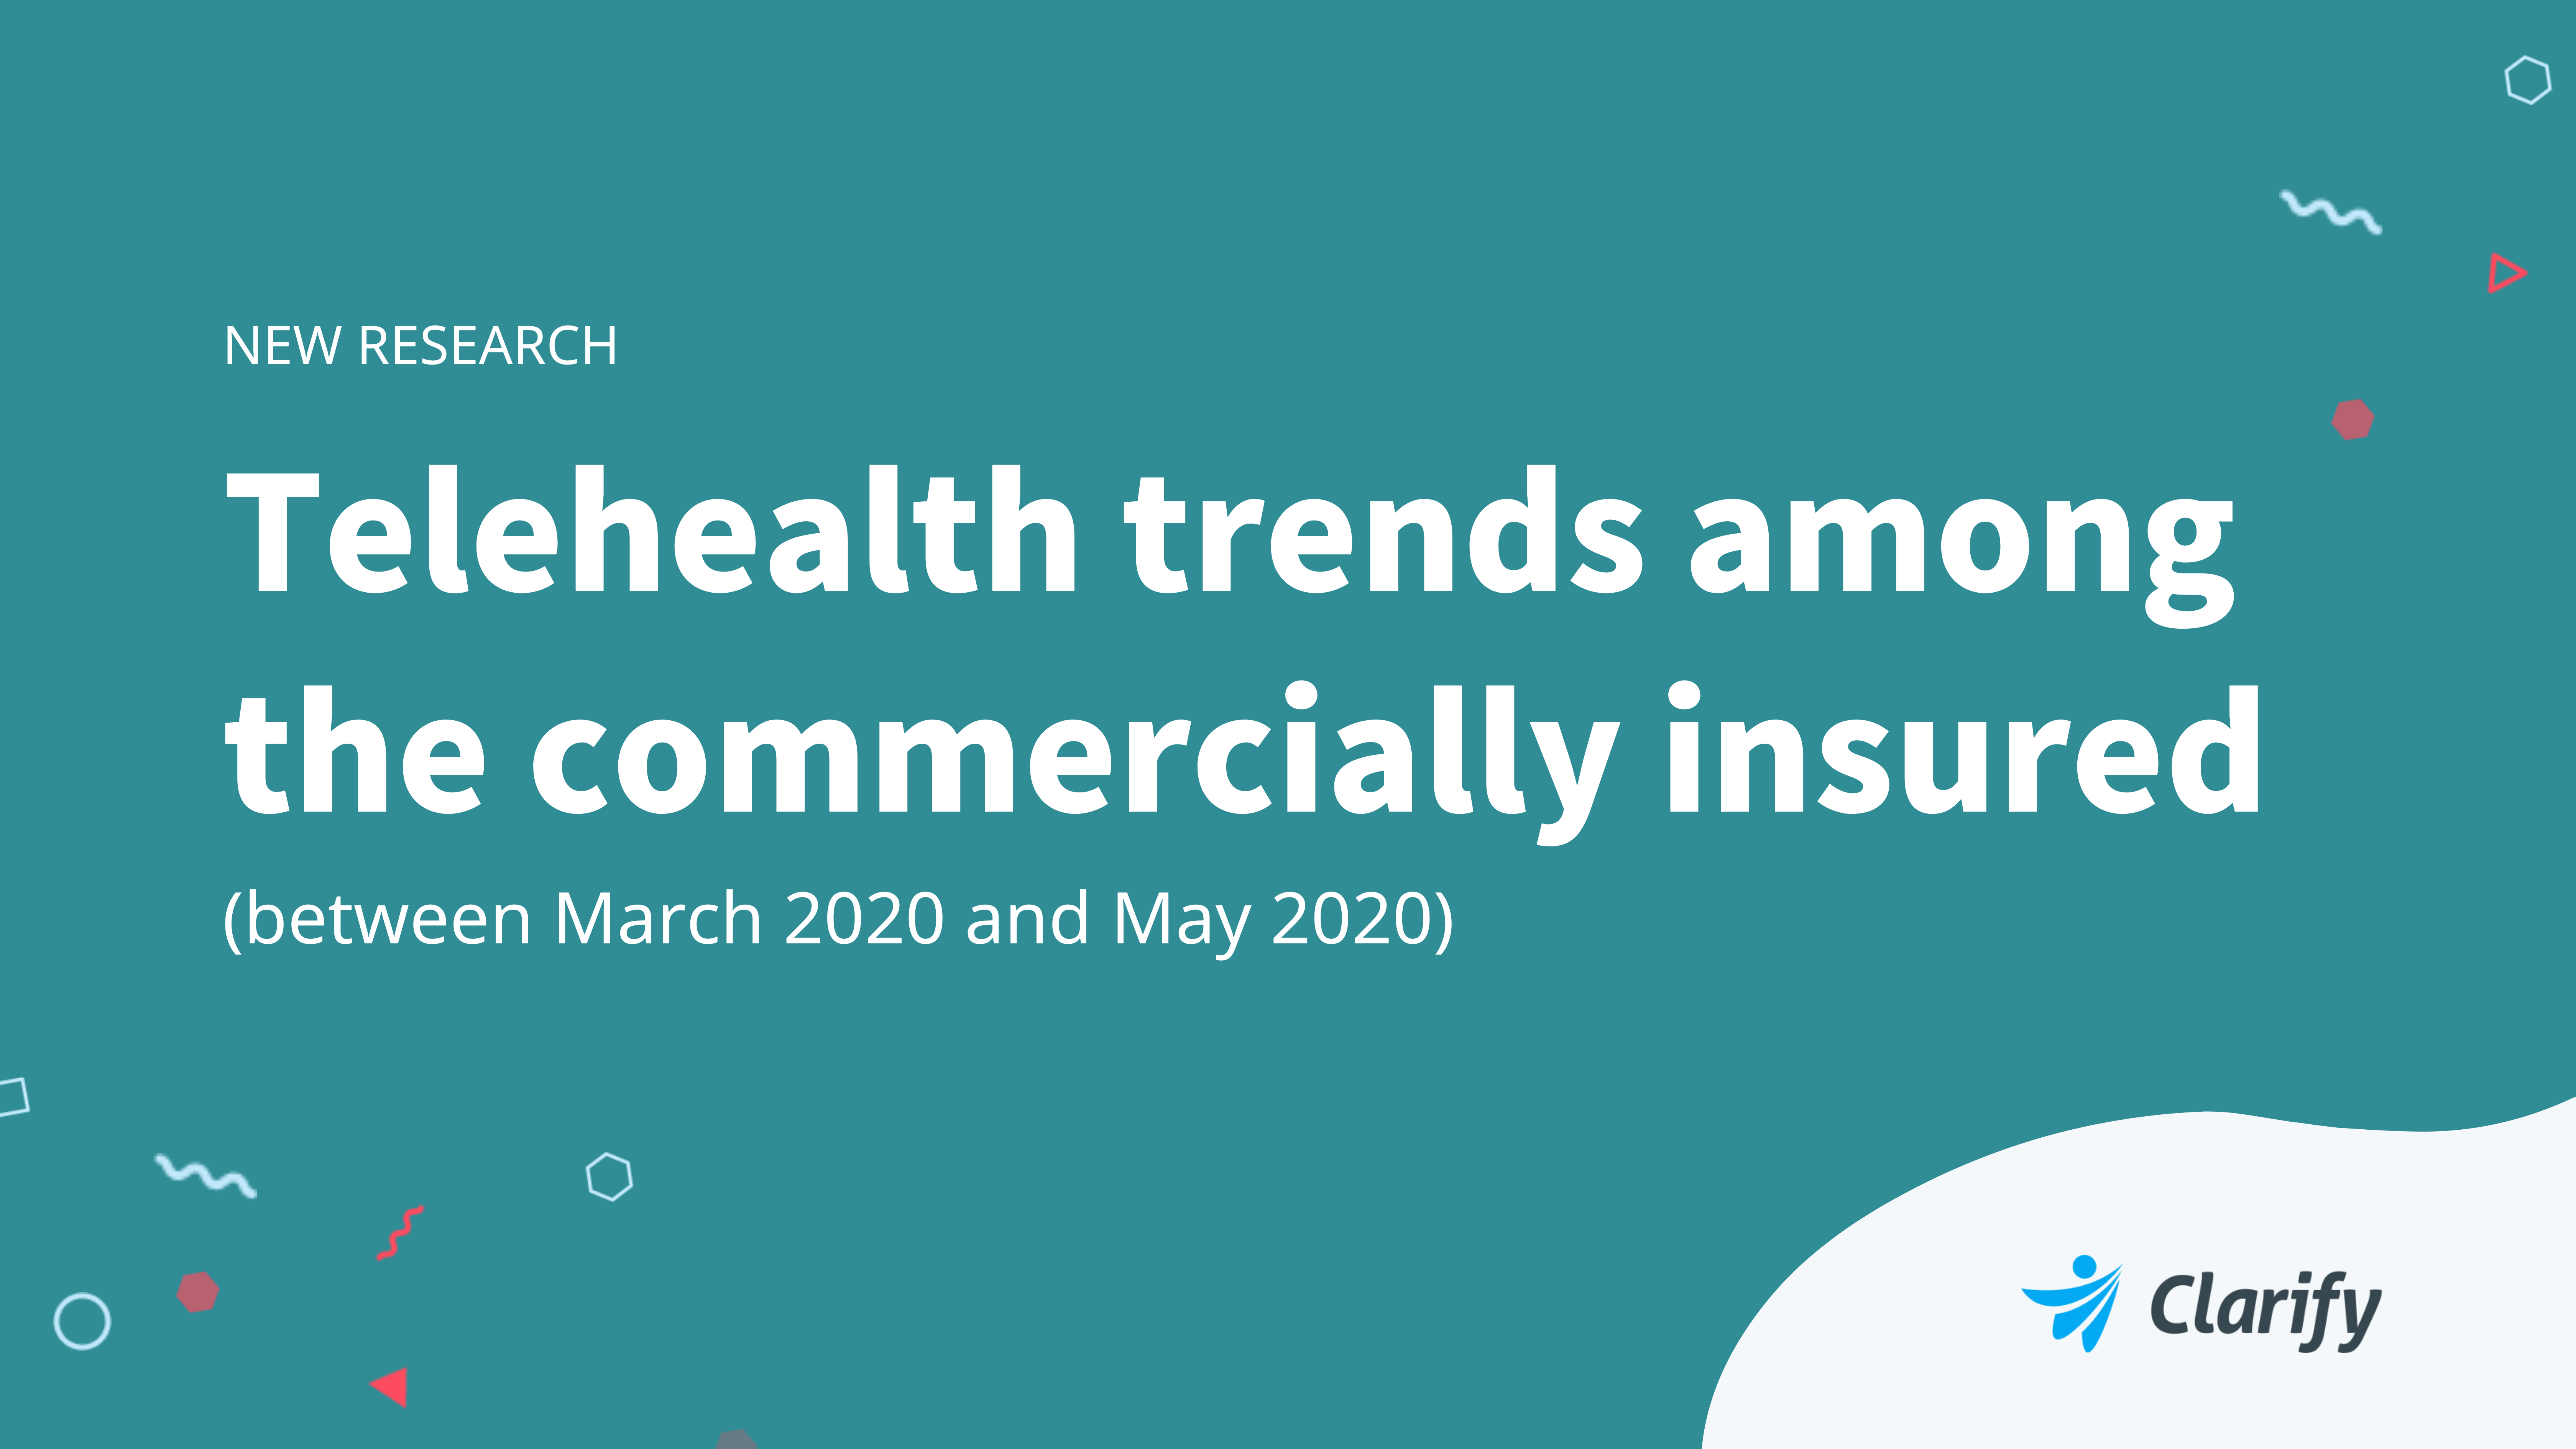 Clarify Health telehealth trends research 2020